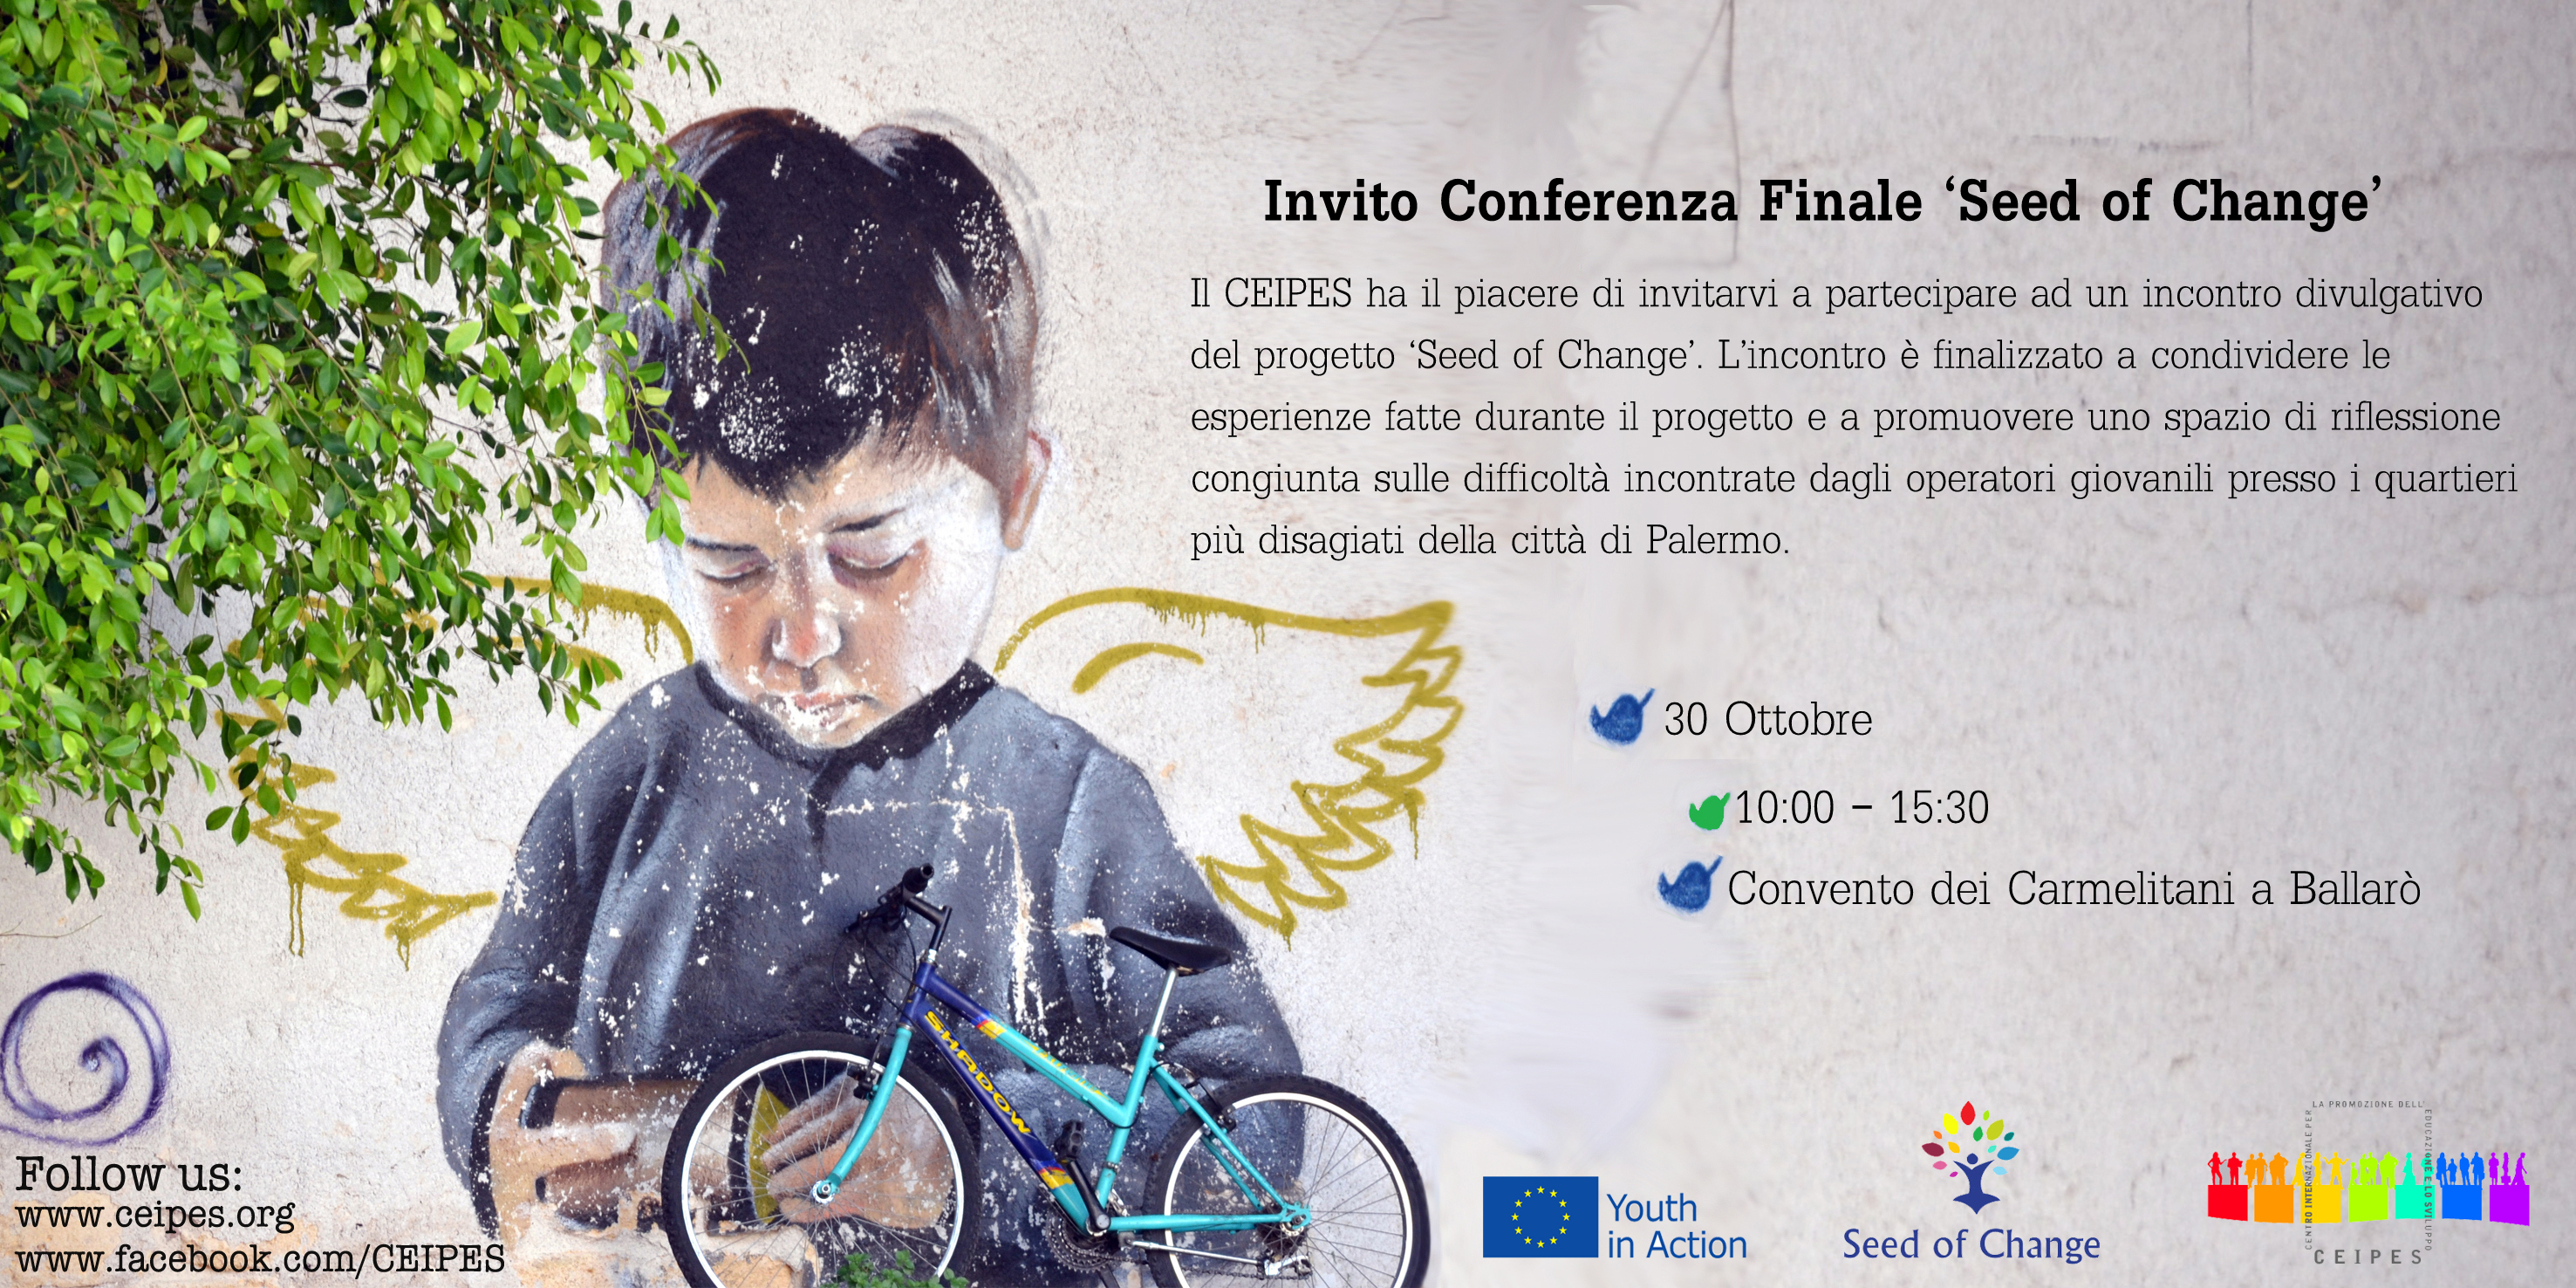 Invito Conferenza Finale 'Seed of Change'